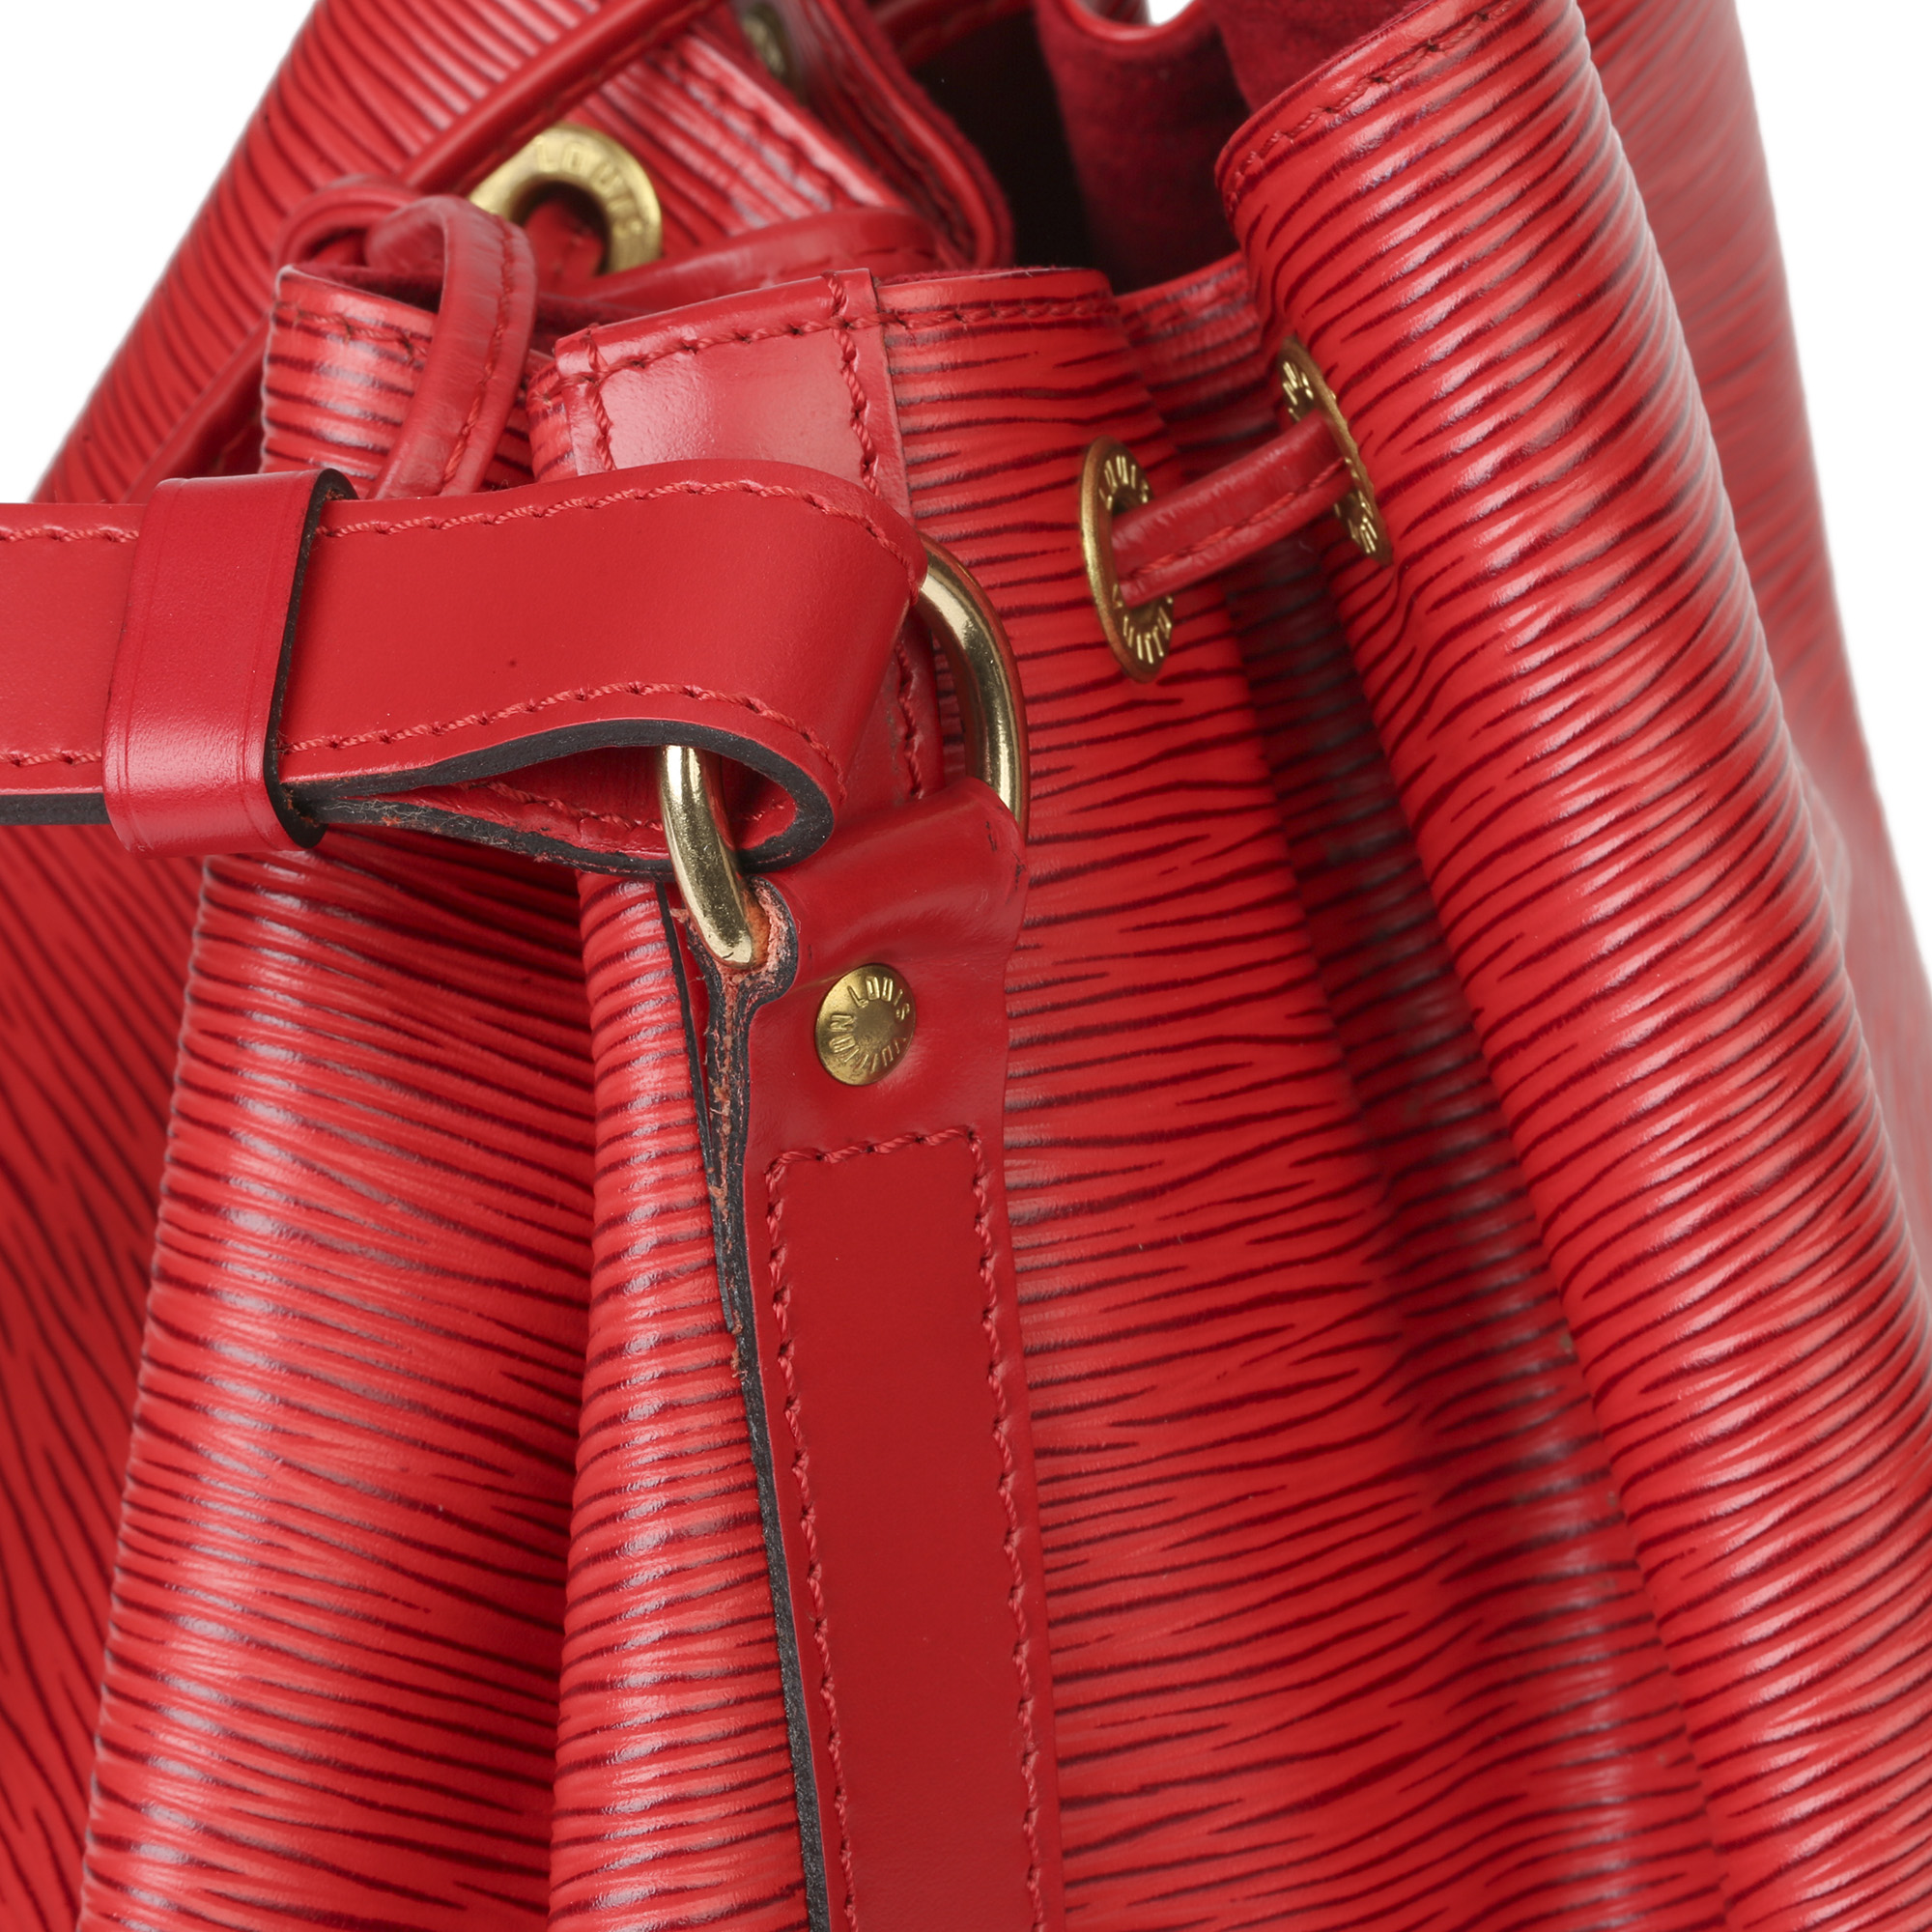 Louis Vuitton Red Epi Leather Vintage Petit NoŽ - Image 6 of 11